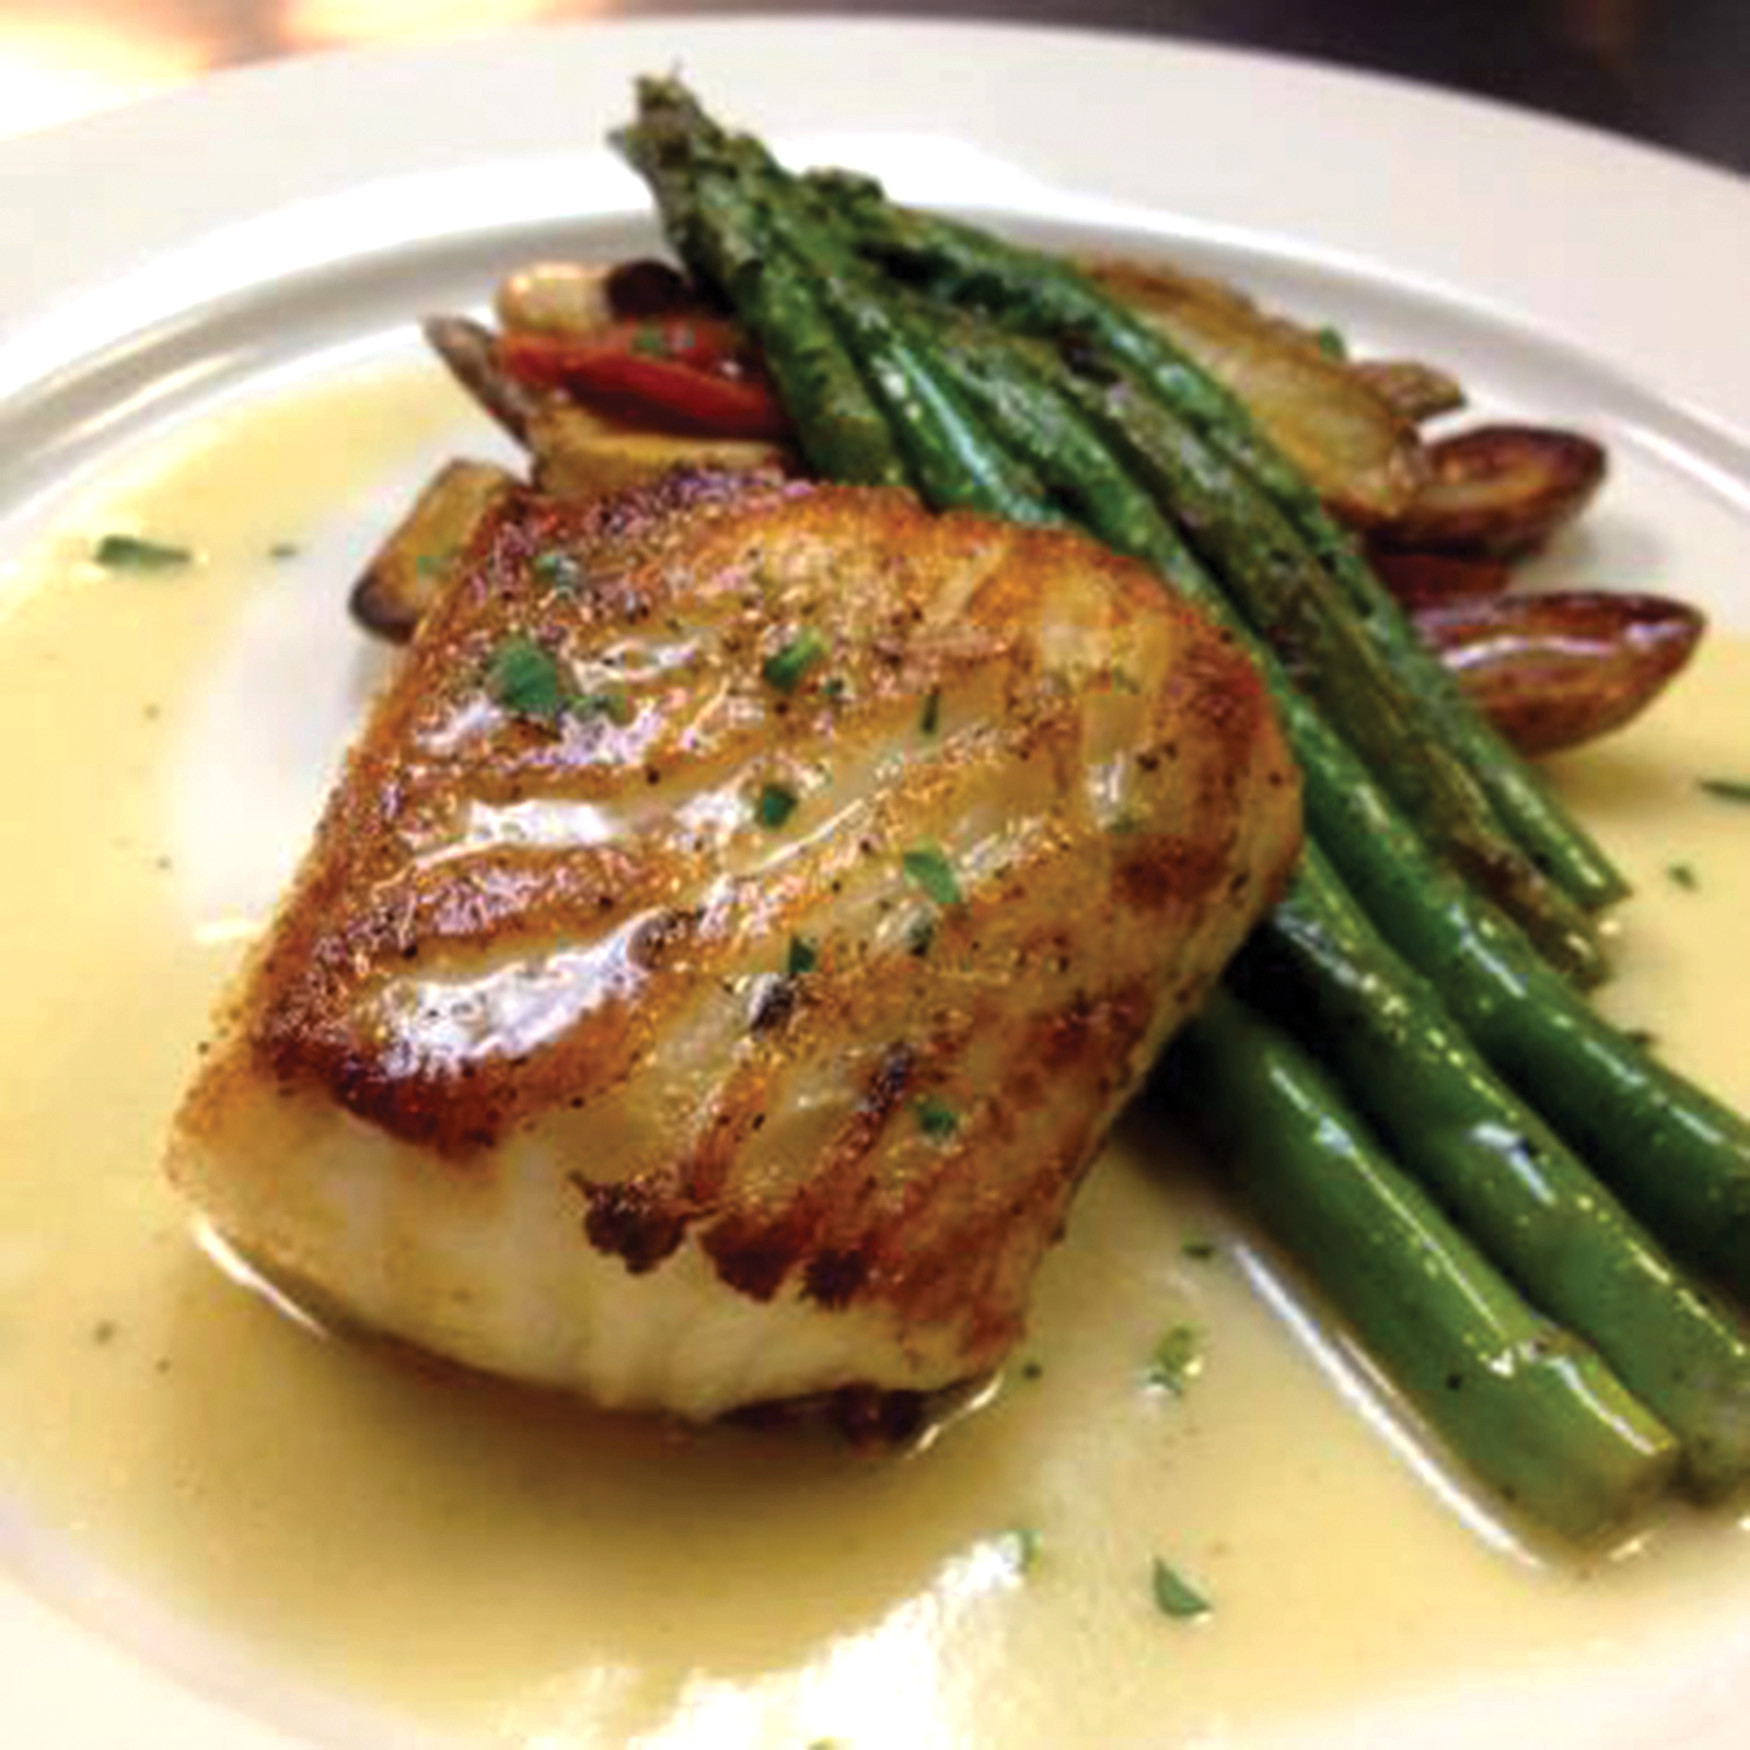 Terra in the Ortega/Avondale area serves local favorites such as fresh sea bass with beurre blanc.